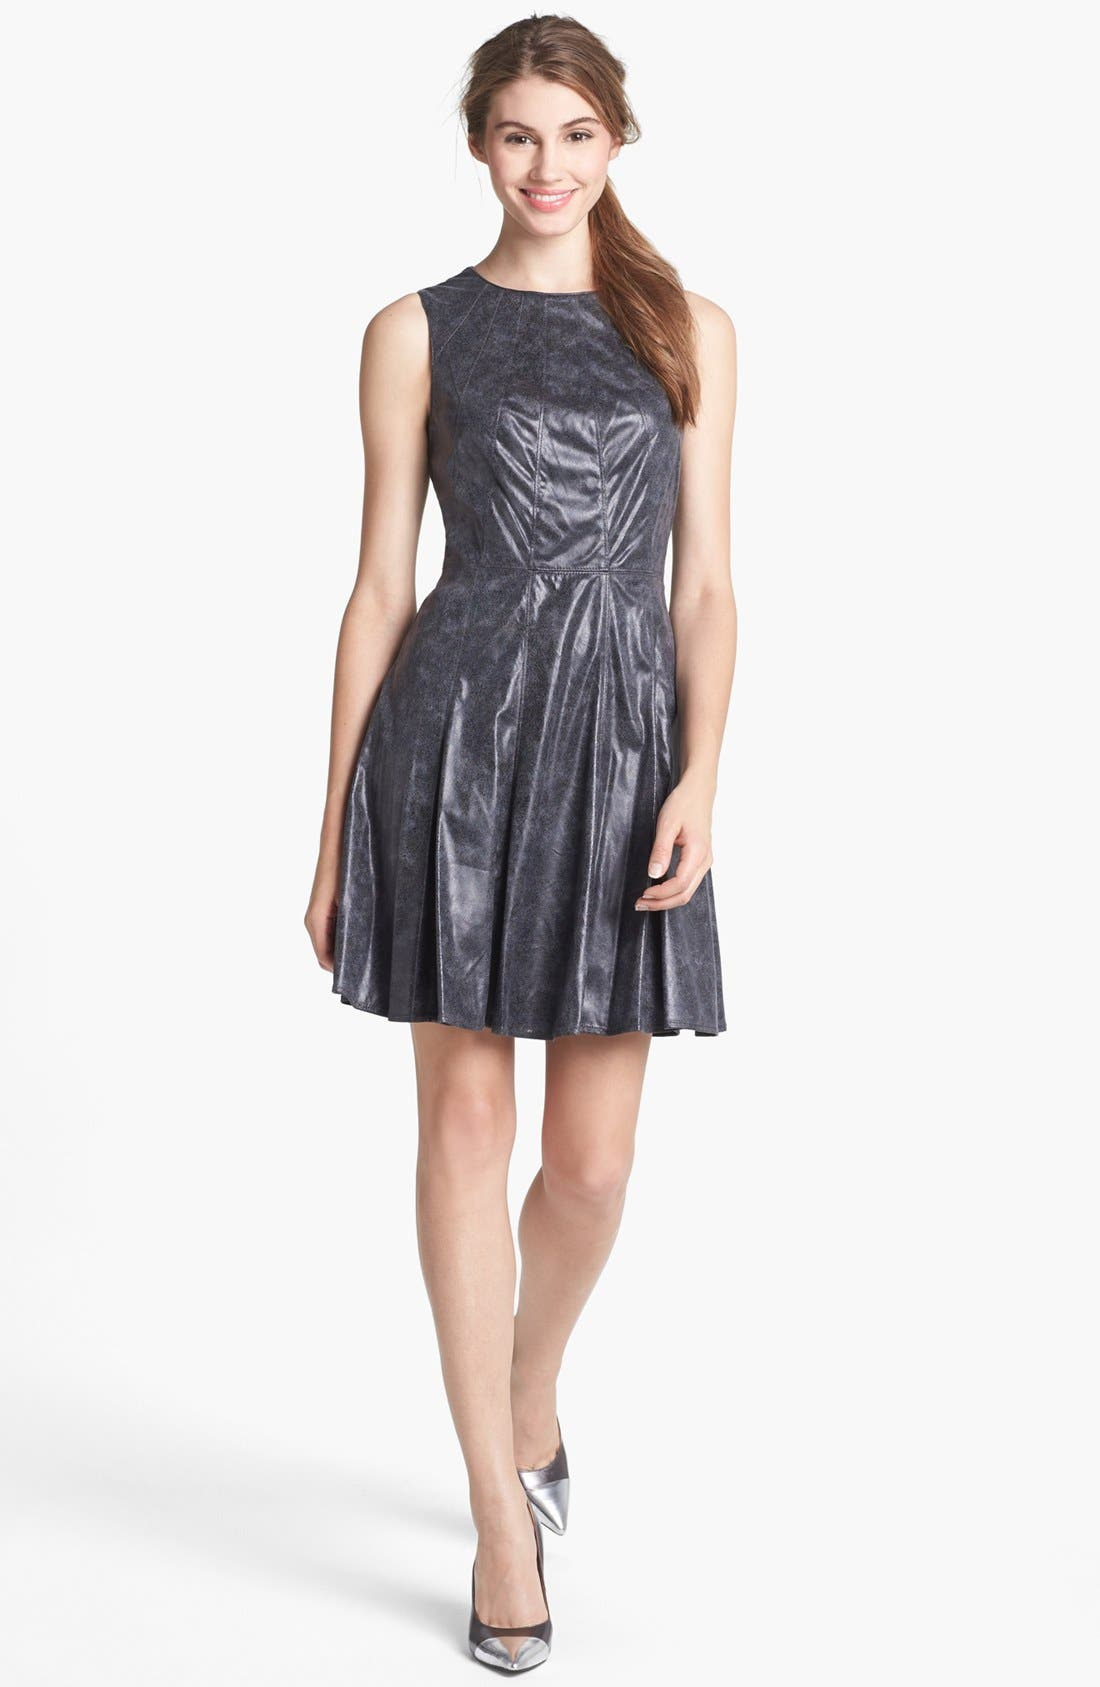 Alternate Image 1 Selected - Vince Camuto Faux Leather Fit & Flare Dress